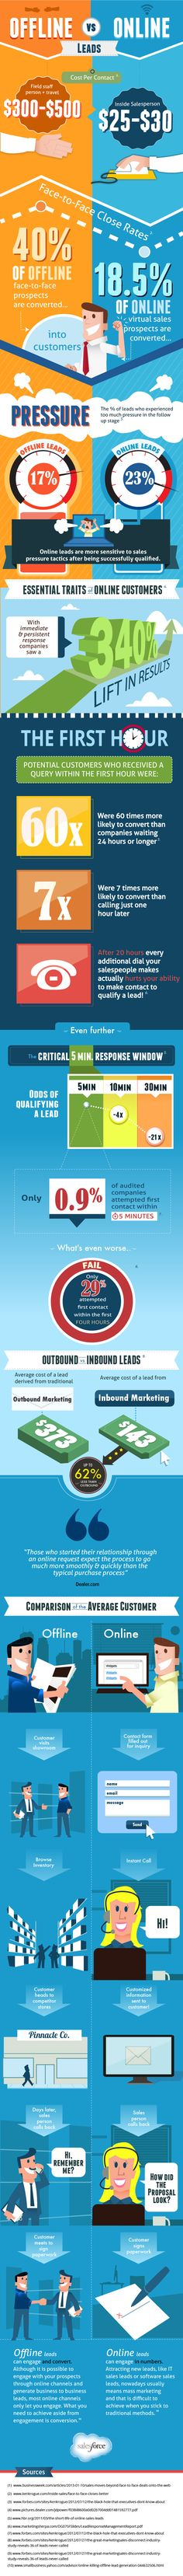 Difference between online and offline lead generation